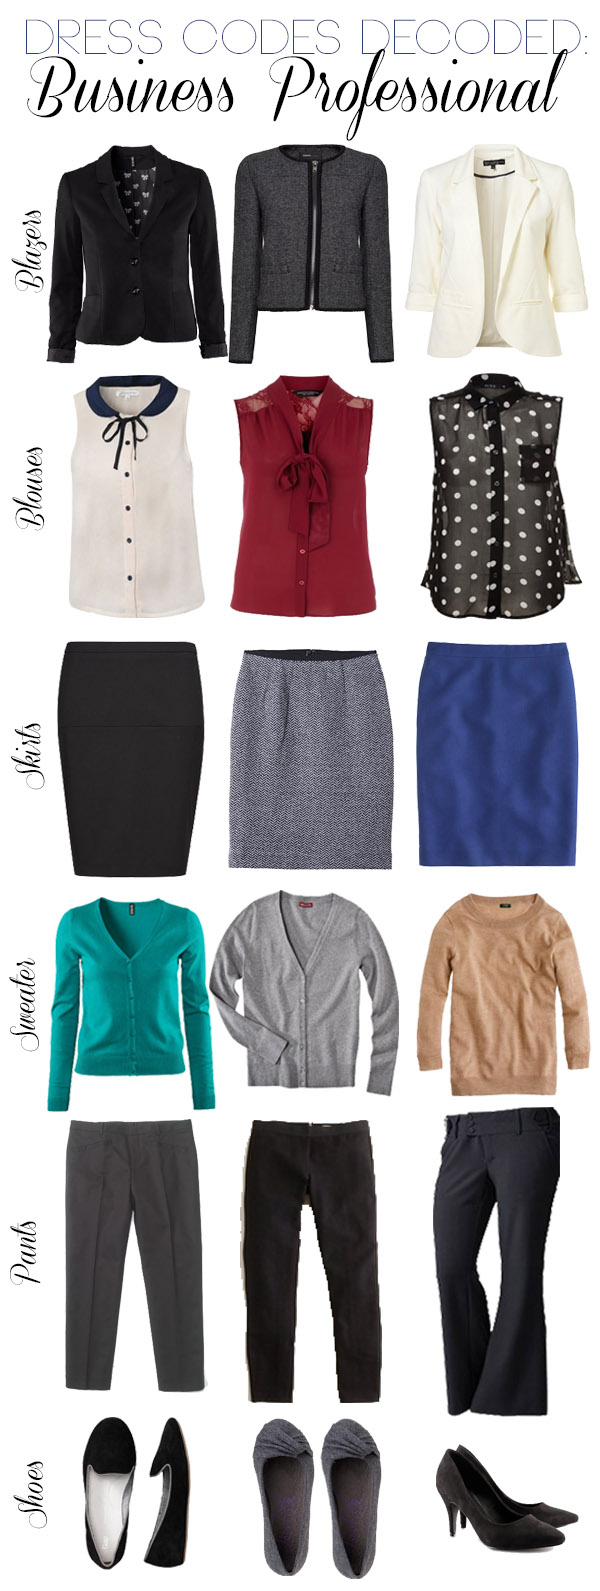 one, two, three, work! On your mark, get set, rock a work-appropriate outfit that makes you feel your most radiant! ModCloth offers incredible options ranging from simple, versatile blouses and crisp trousers to vintage-inspired work dresses that are sure to cause all sorts of water cooler chatter.